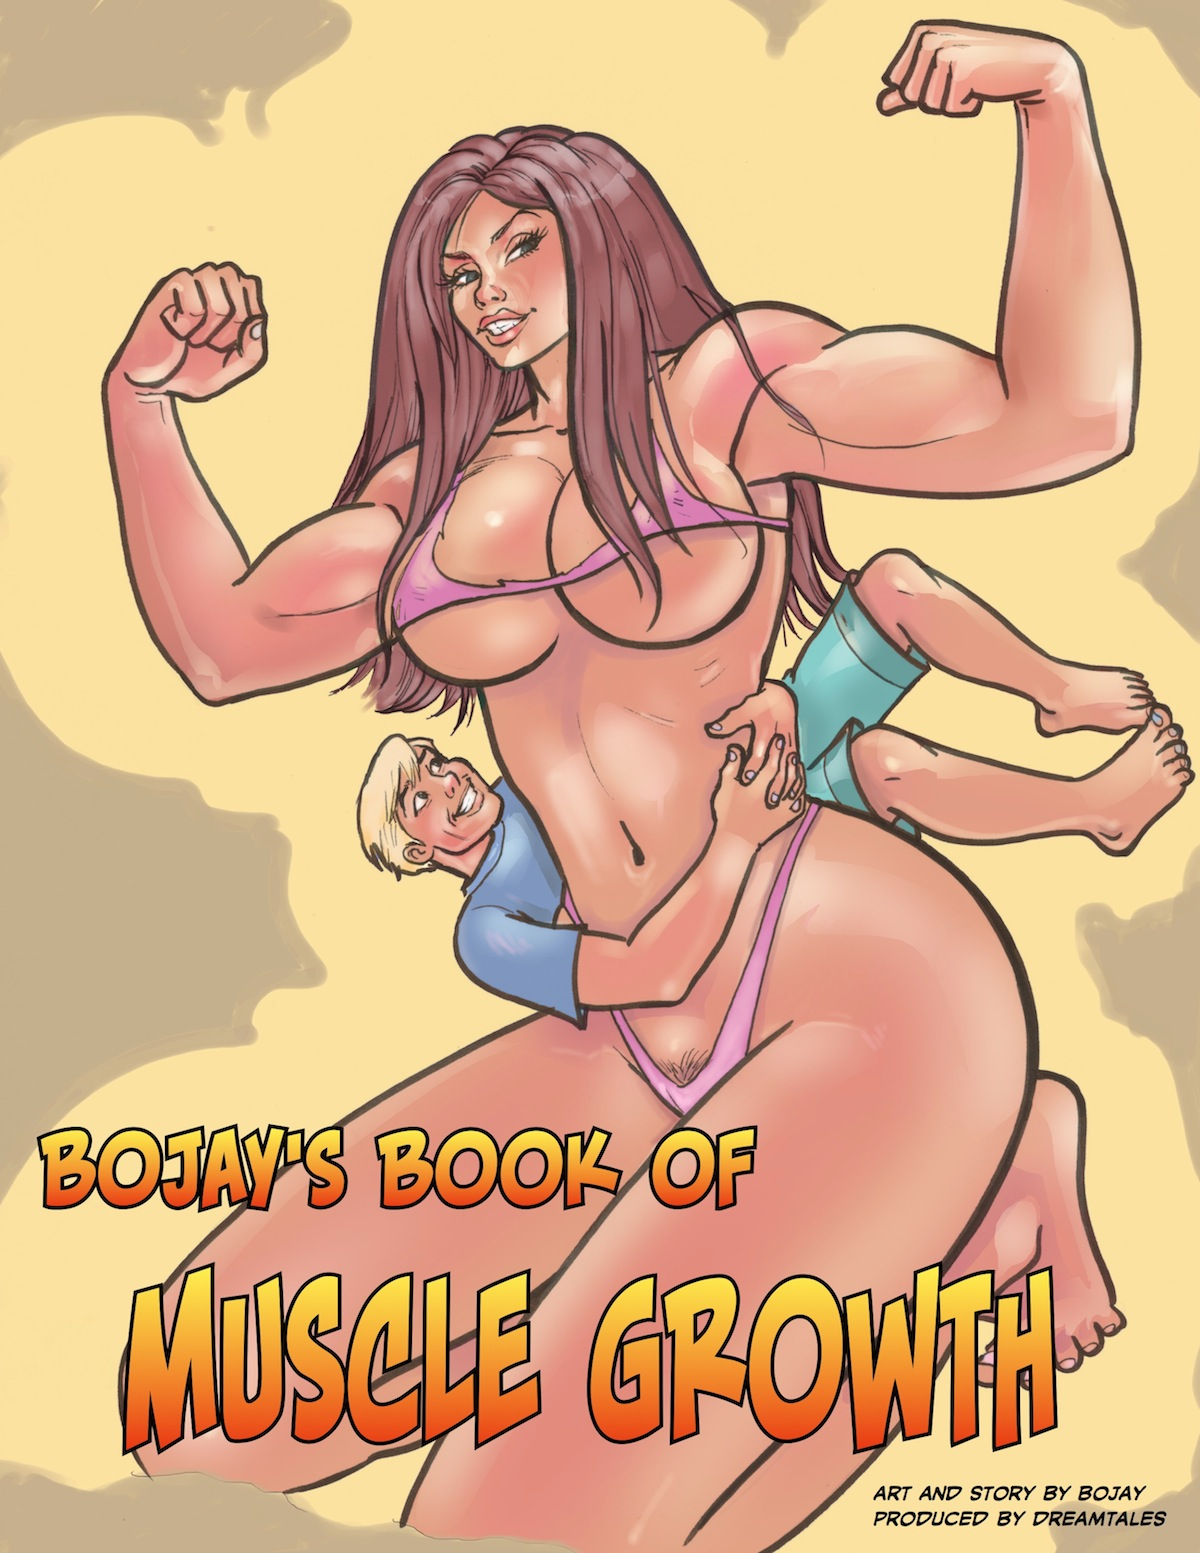 Muscle giantess growth sex comics for support